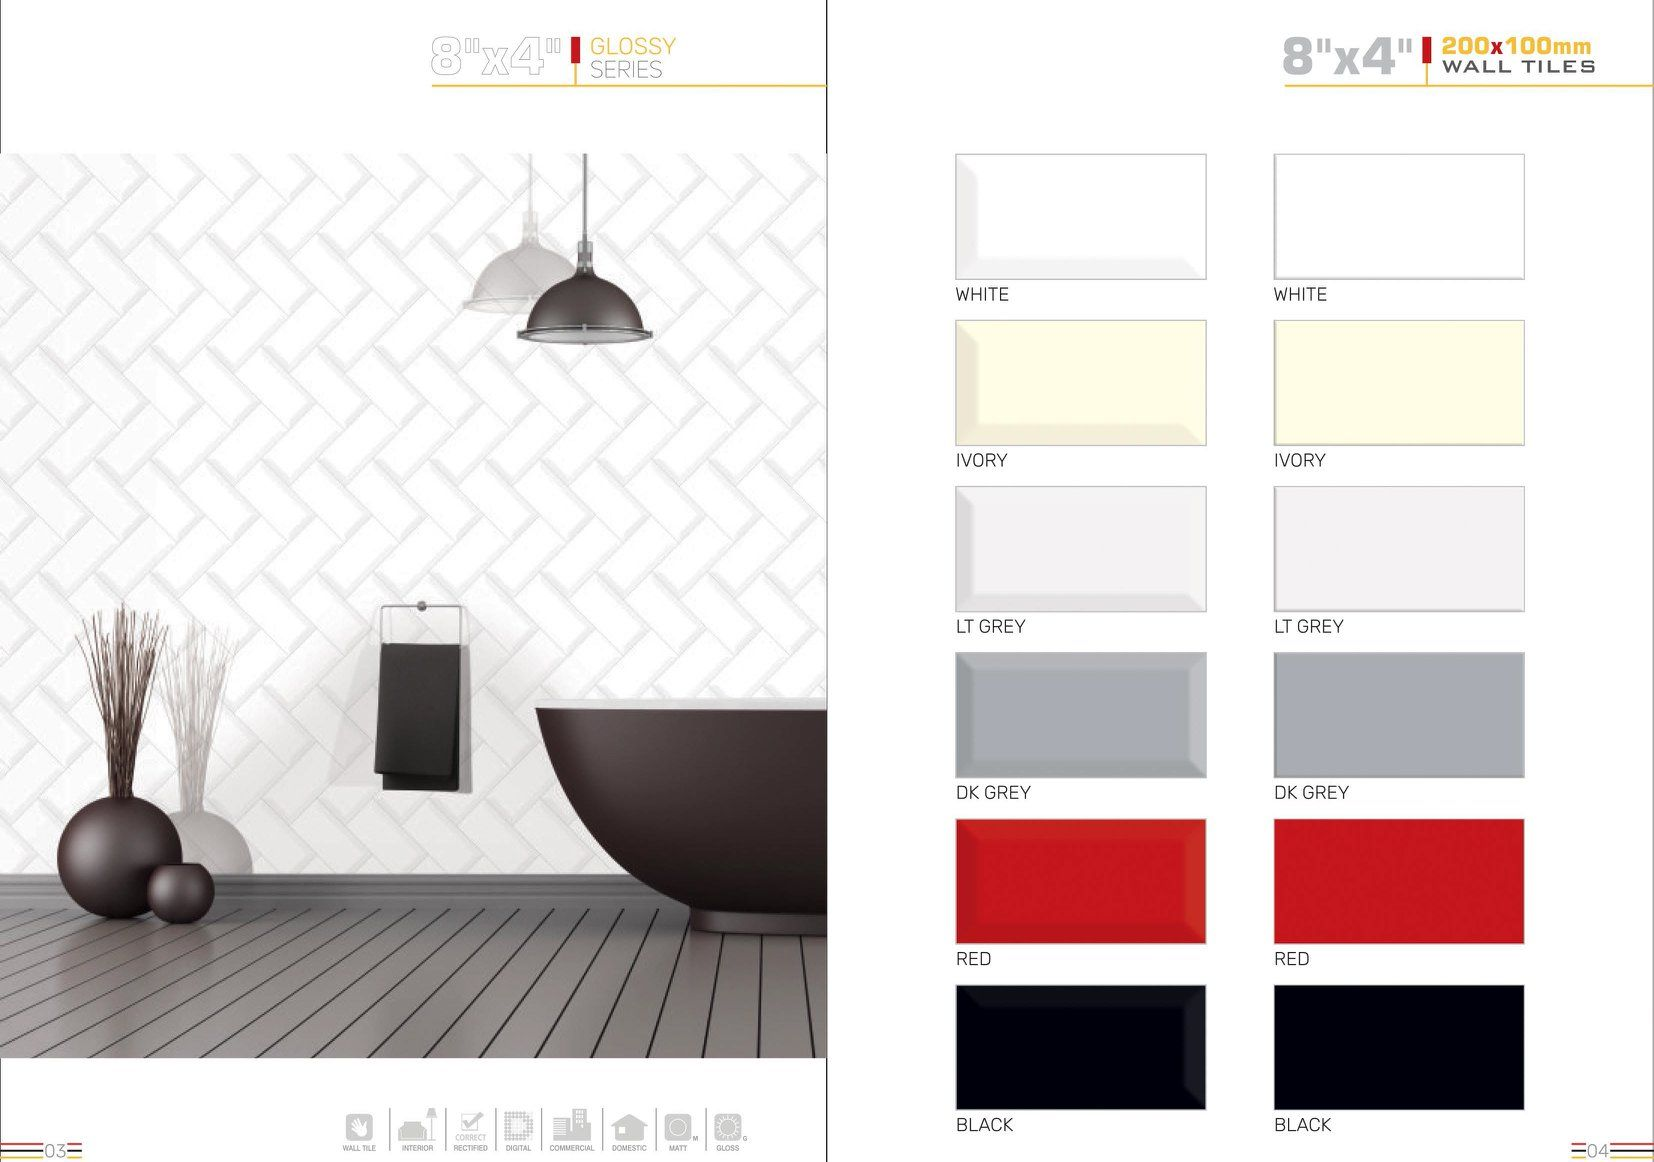 Millennium Tiles 100x200mm 4x8 Subwaytile Glossy Series Product Catalogue 6 Colors Product Variations 2 Designs Finishings Glossy Colors W